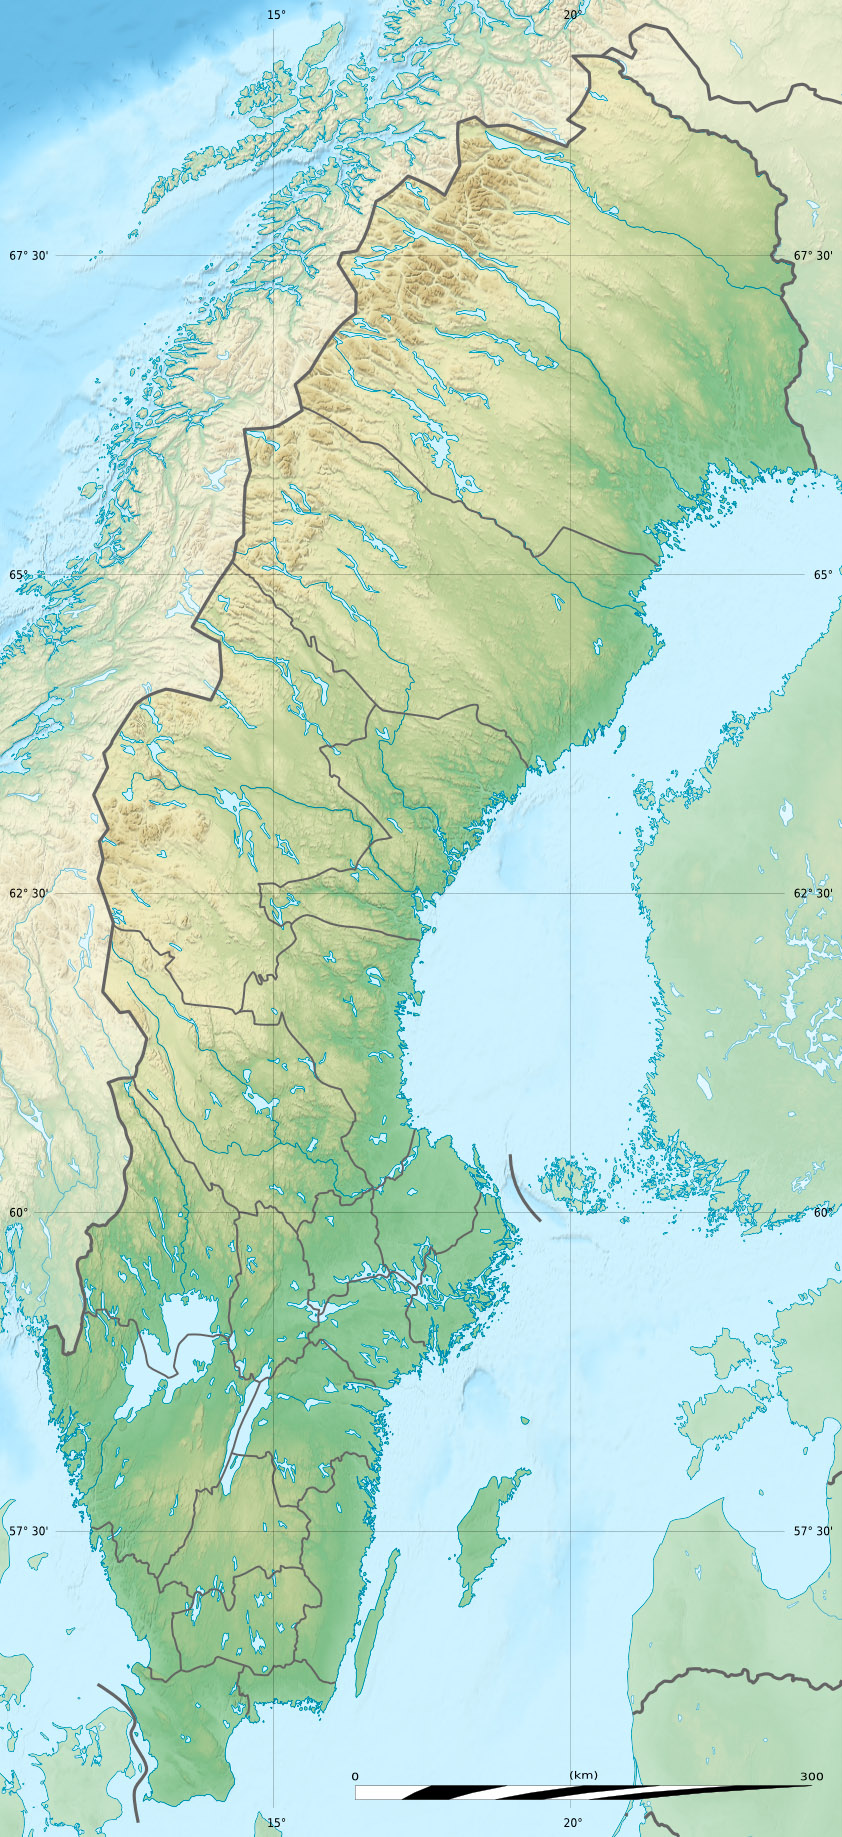 FileSweden Relief Location Mapjpg Wikimedia Commons - Sweden map wiki